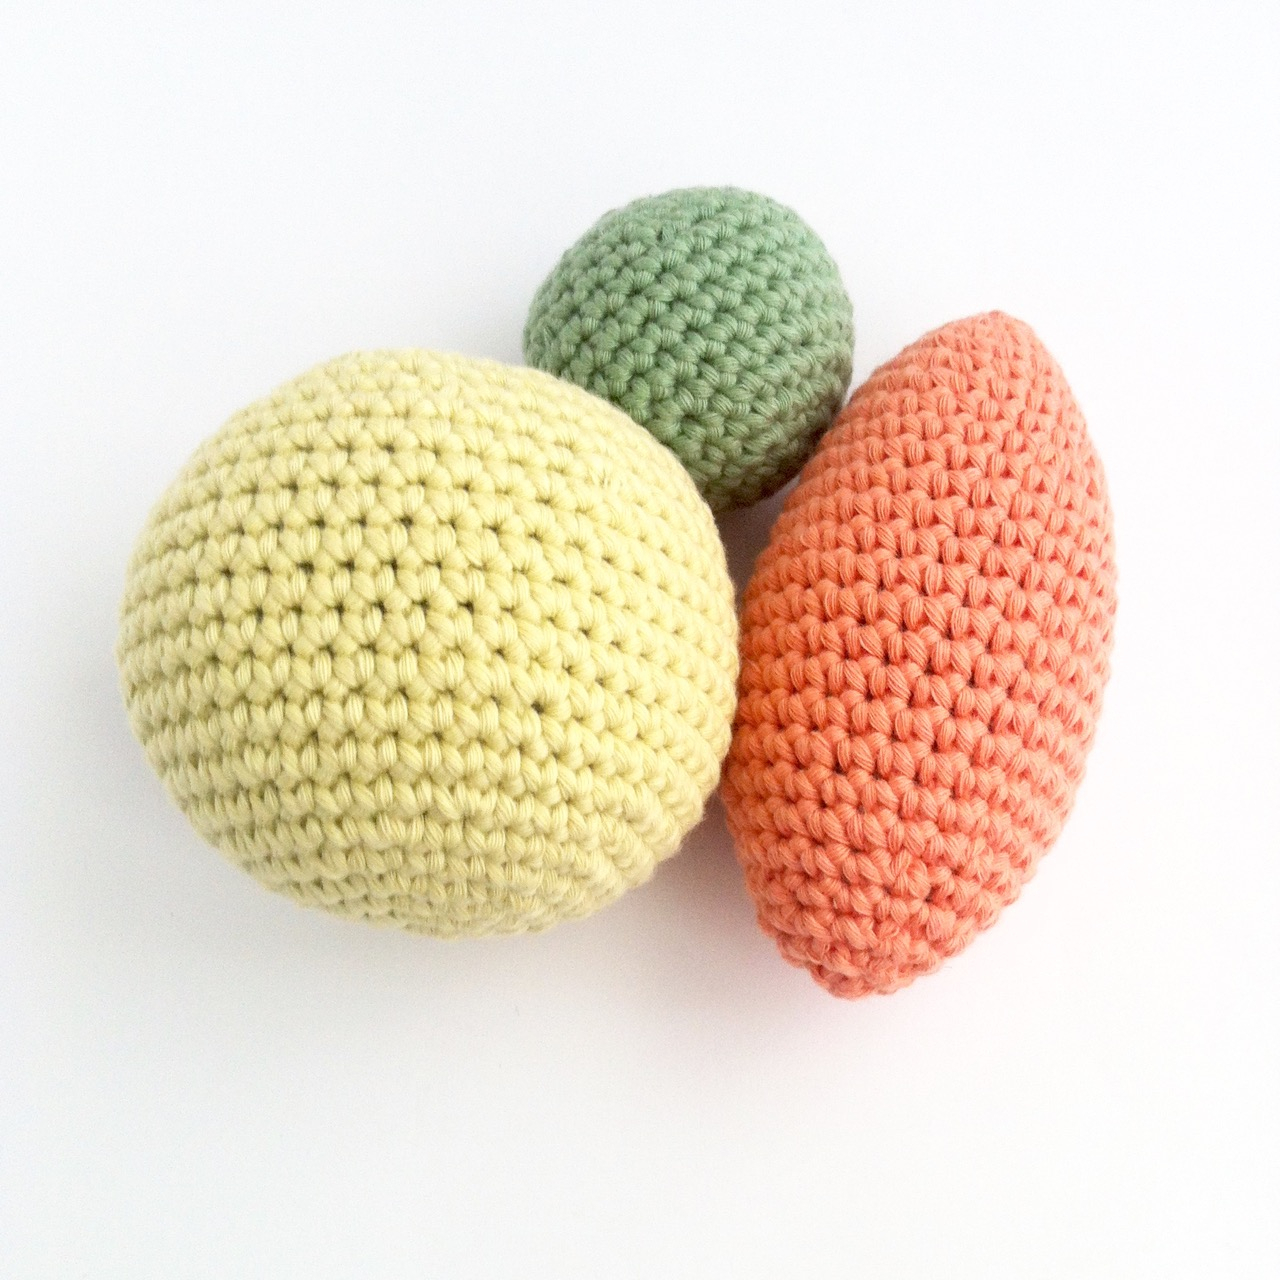 Crochet Ball Pattern Crochet Ornament Pattern Little Conkers